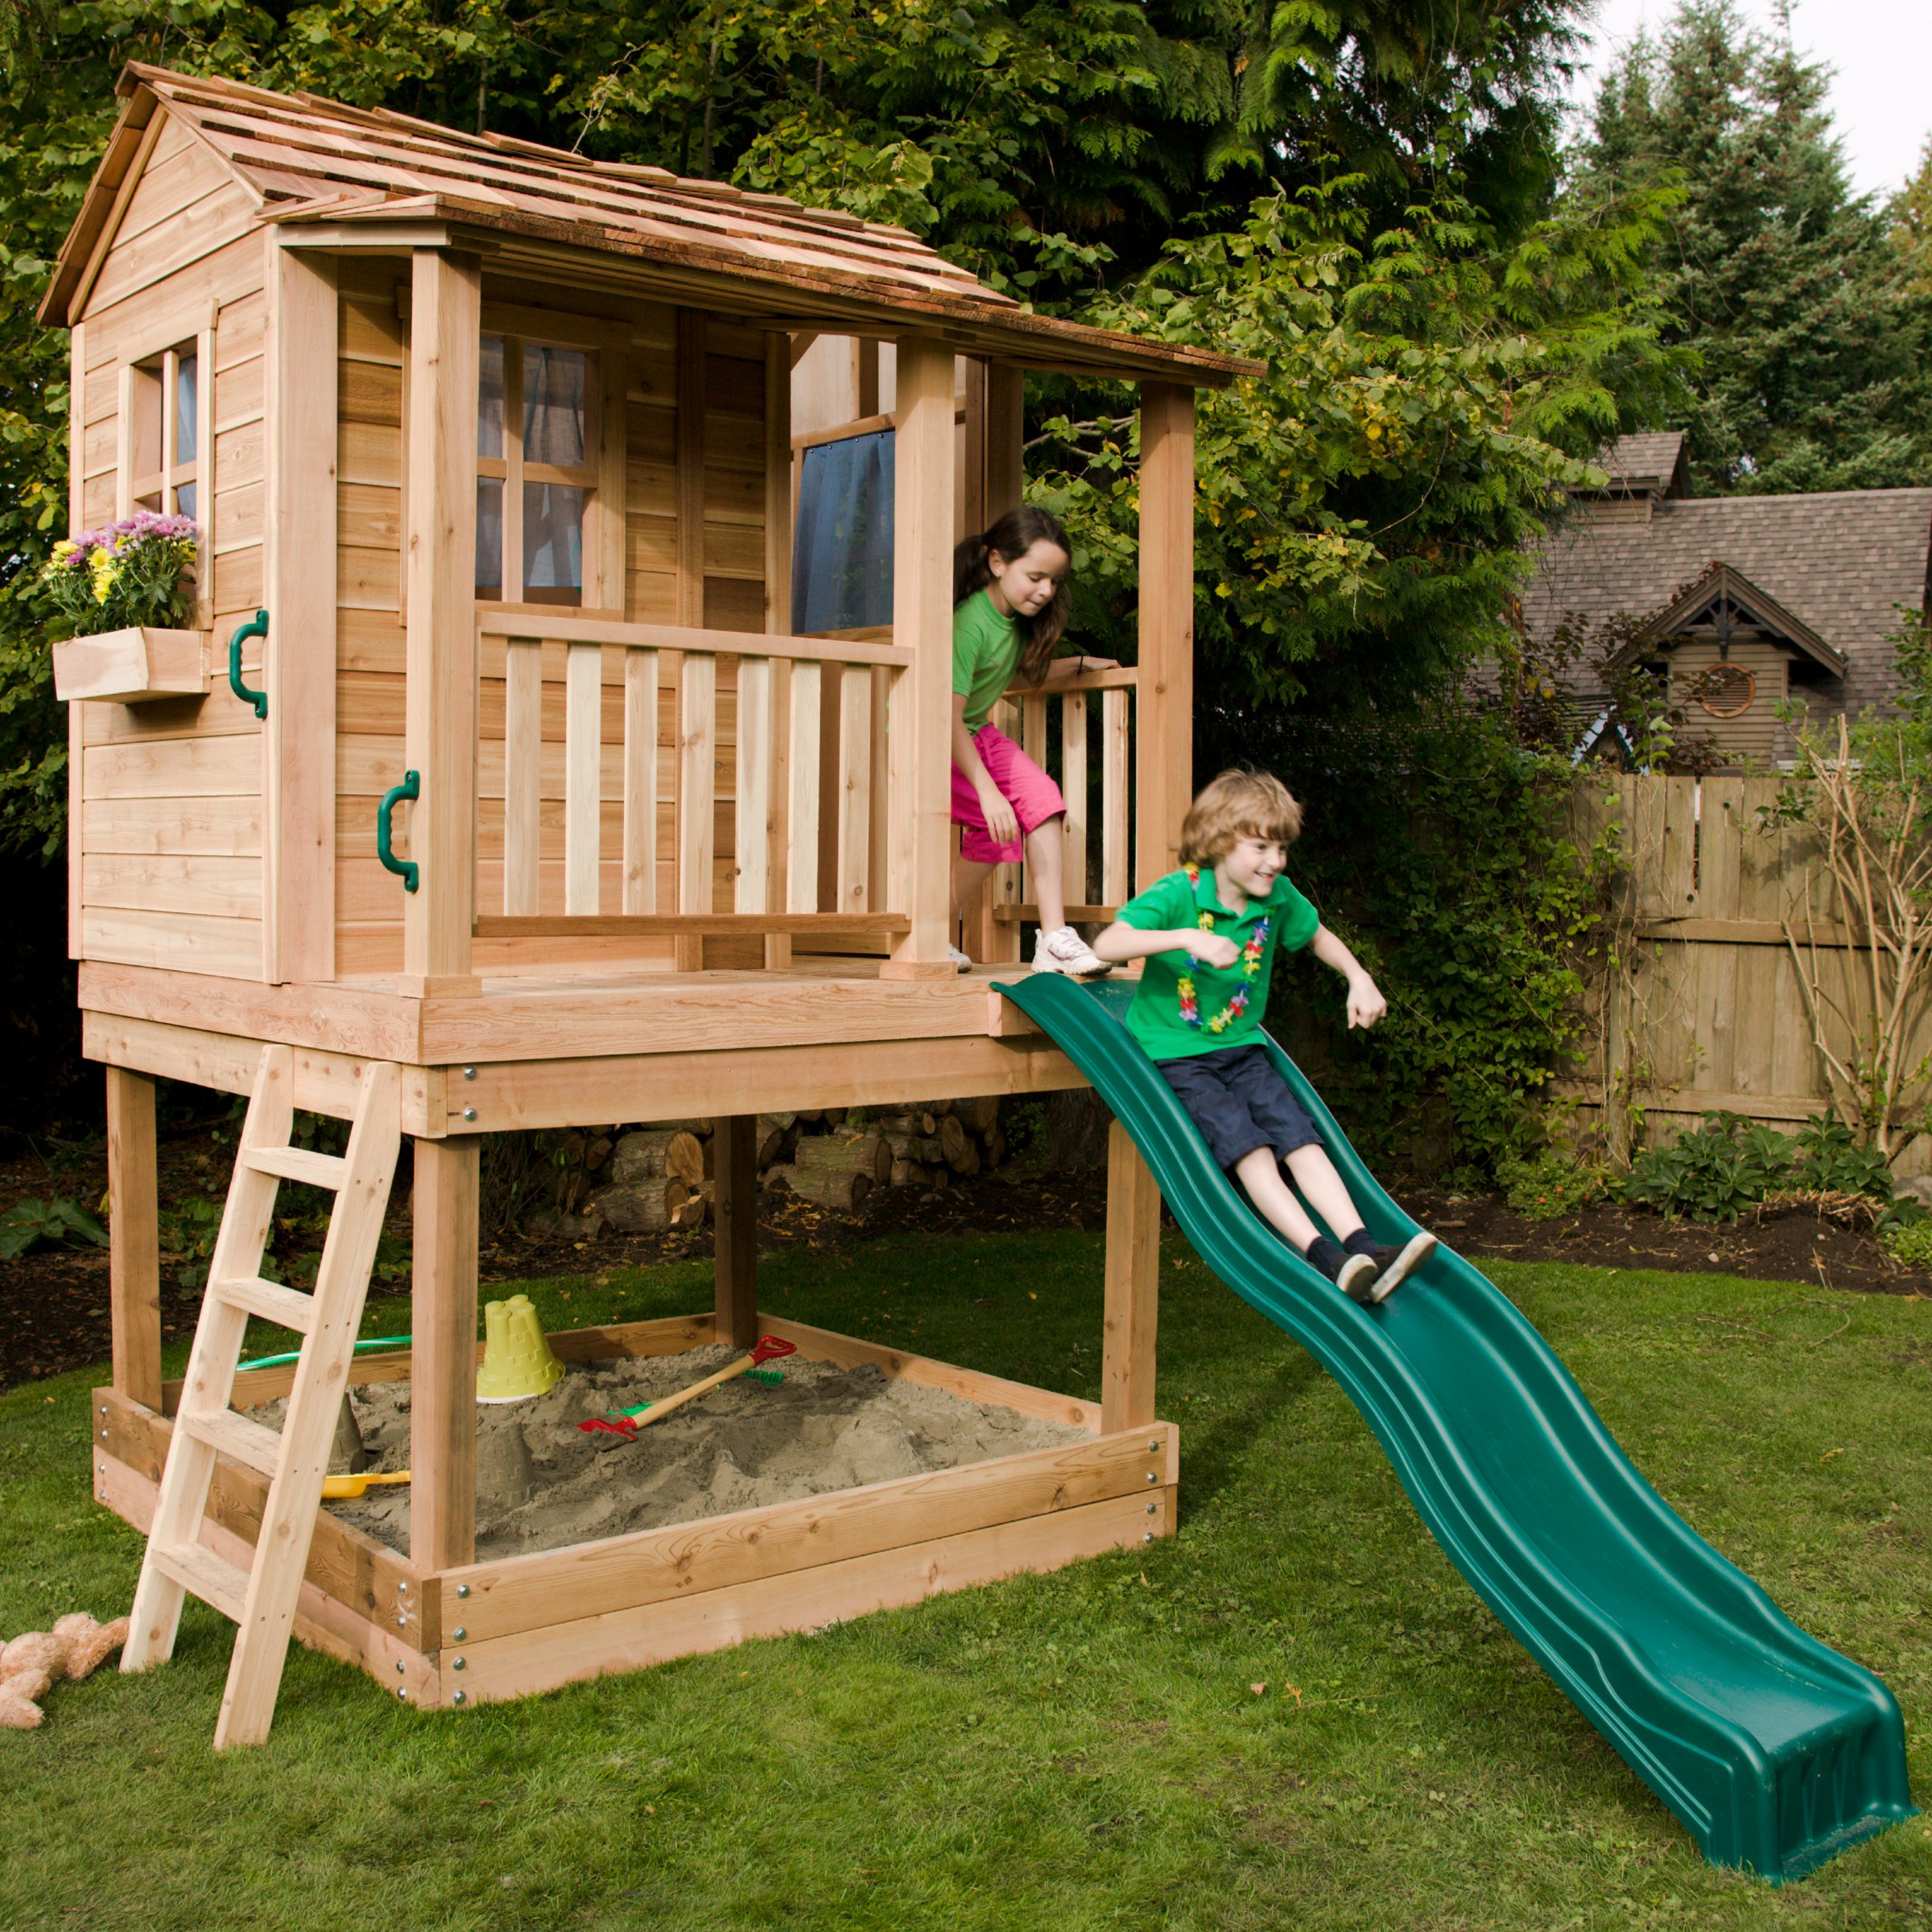 Backyard play houses 28 images 15 pimped out for Kids outdoor playhouse